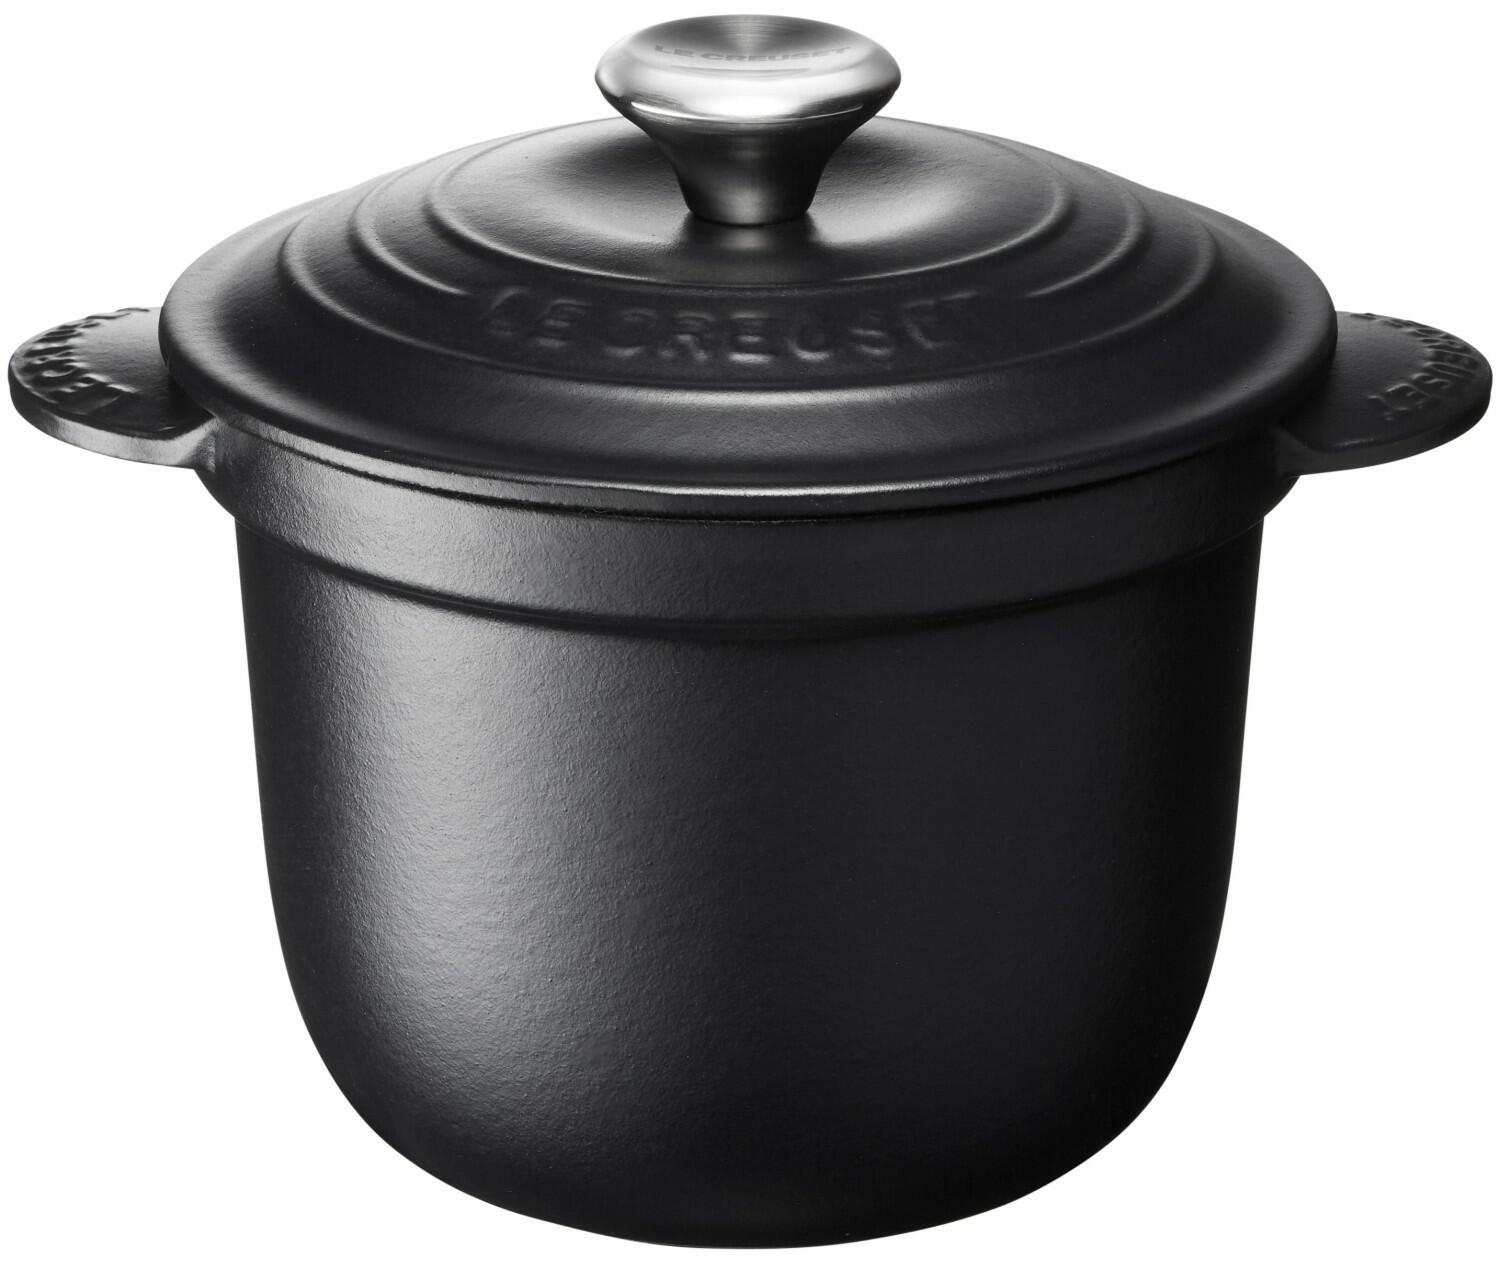 Le Creuset Cocotte Every in schwarz